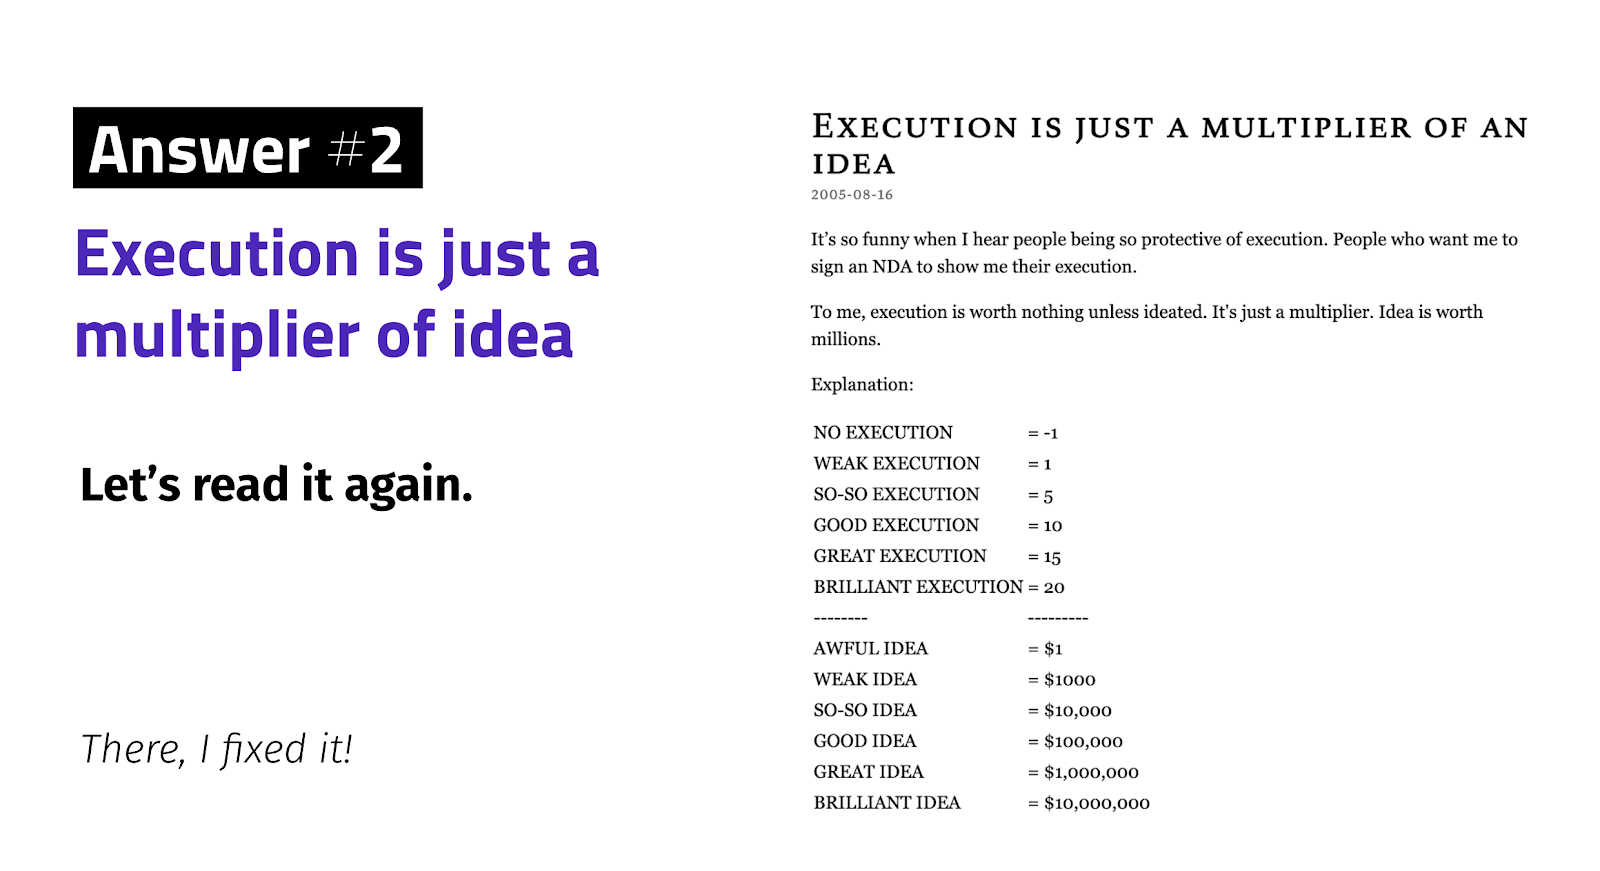 Execution is just a multiplier of an idea